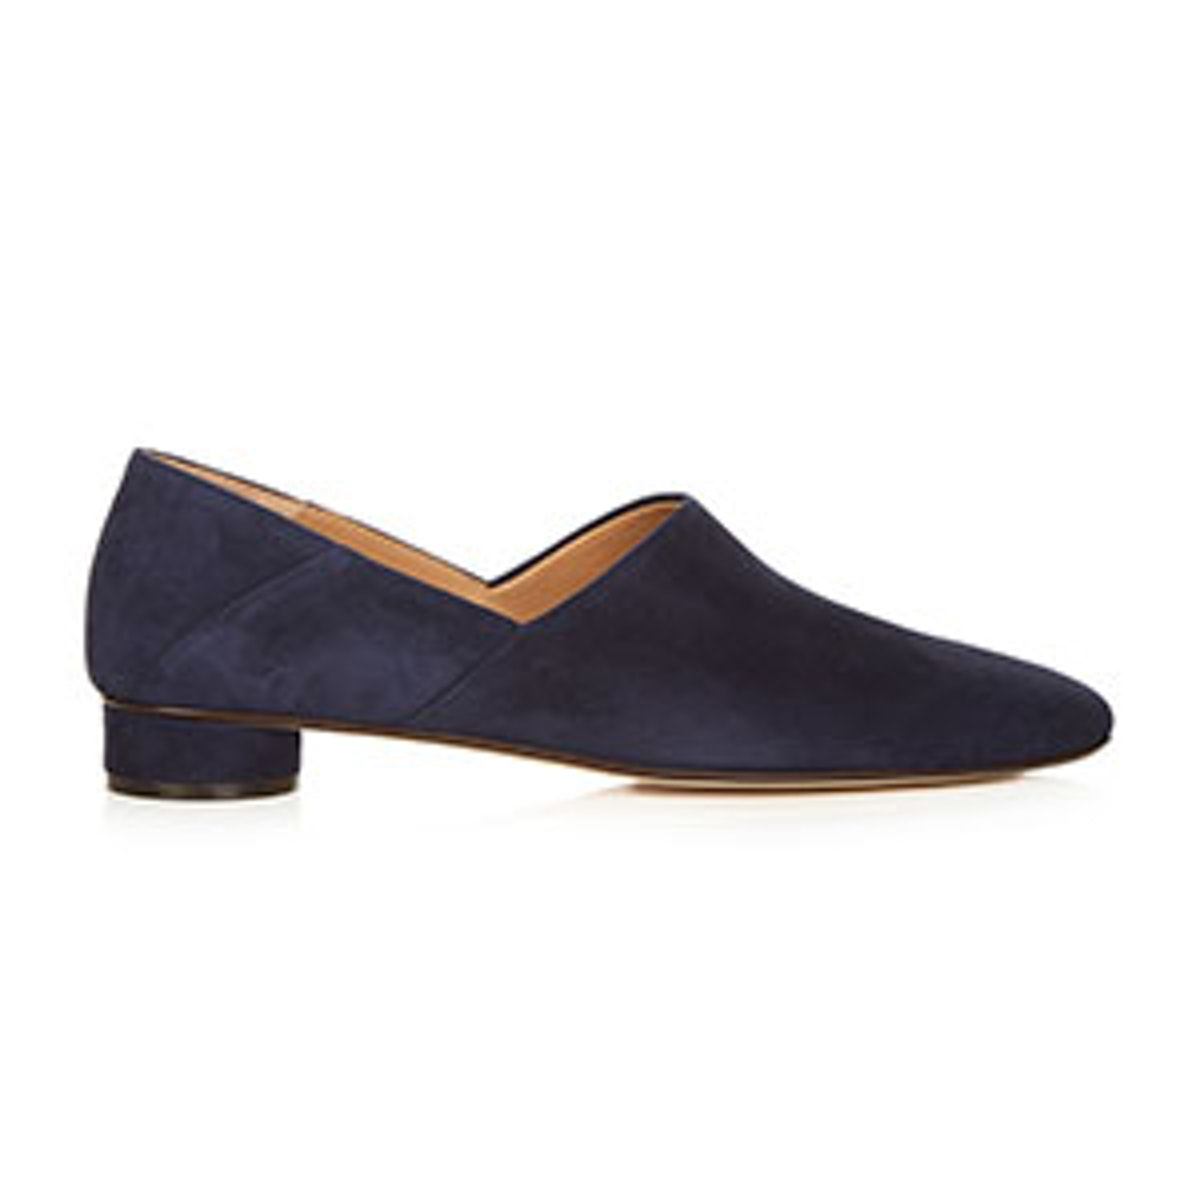 Noelle Suede Loafers